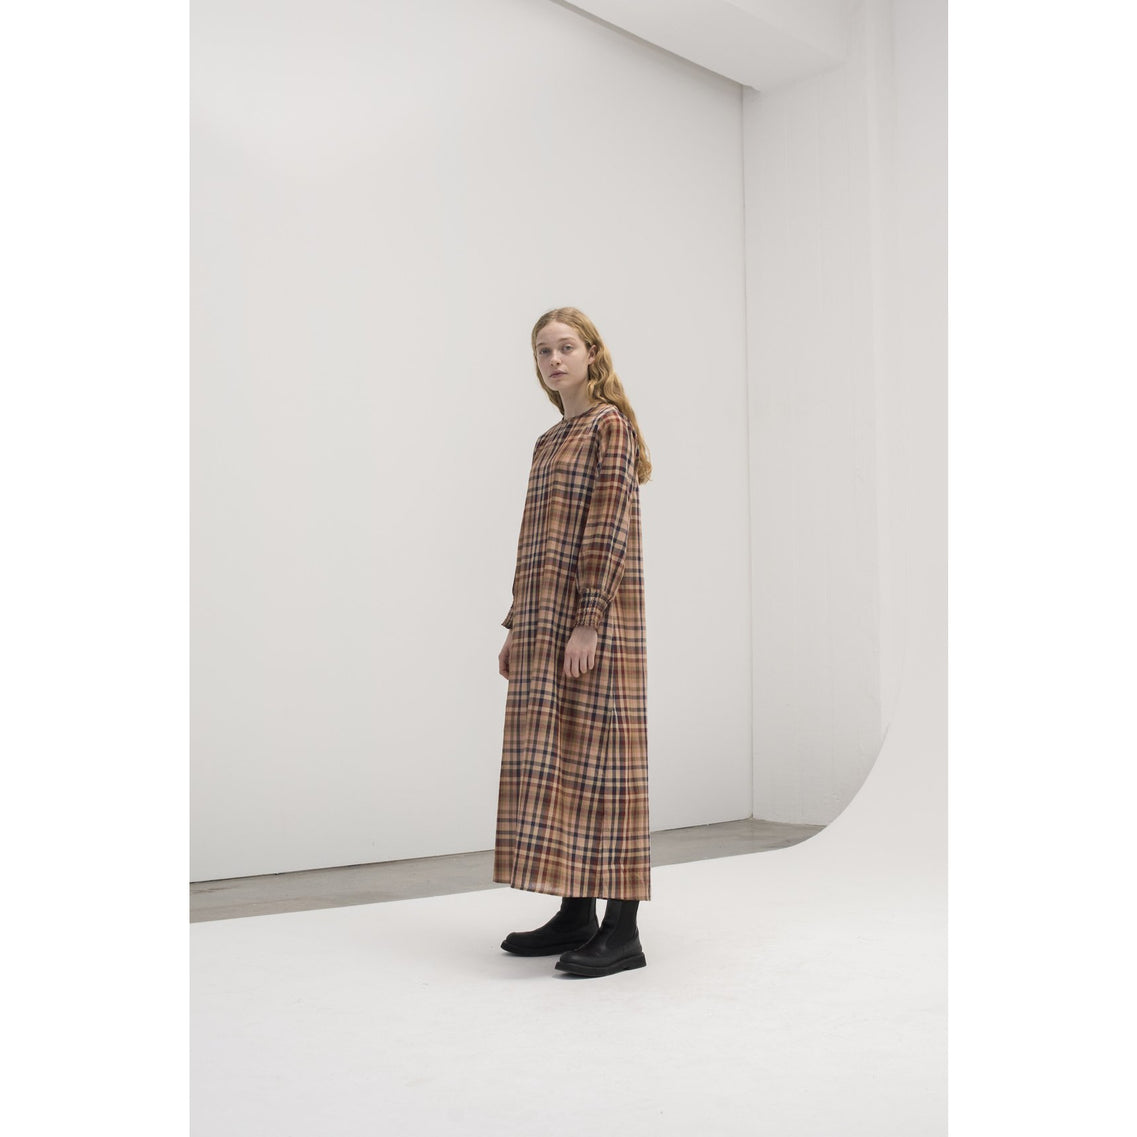 model wearing long sleeve mahogany toned plaid dress